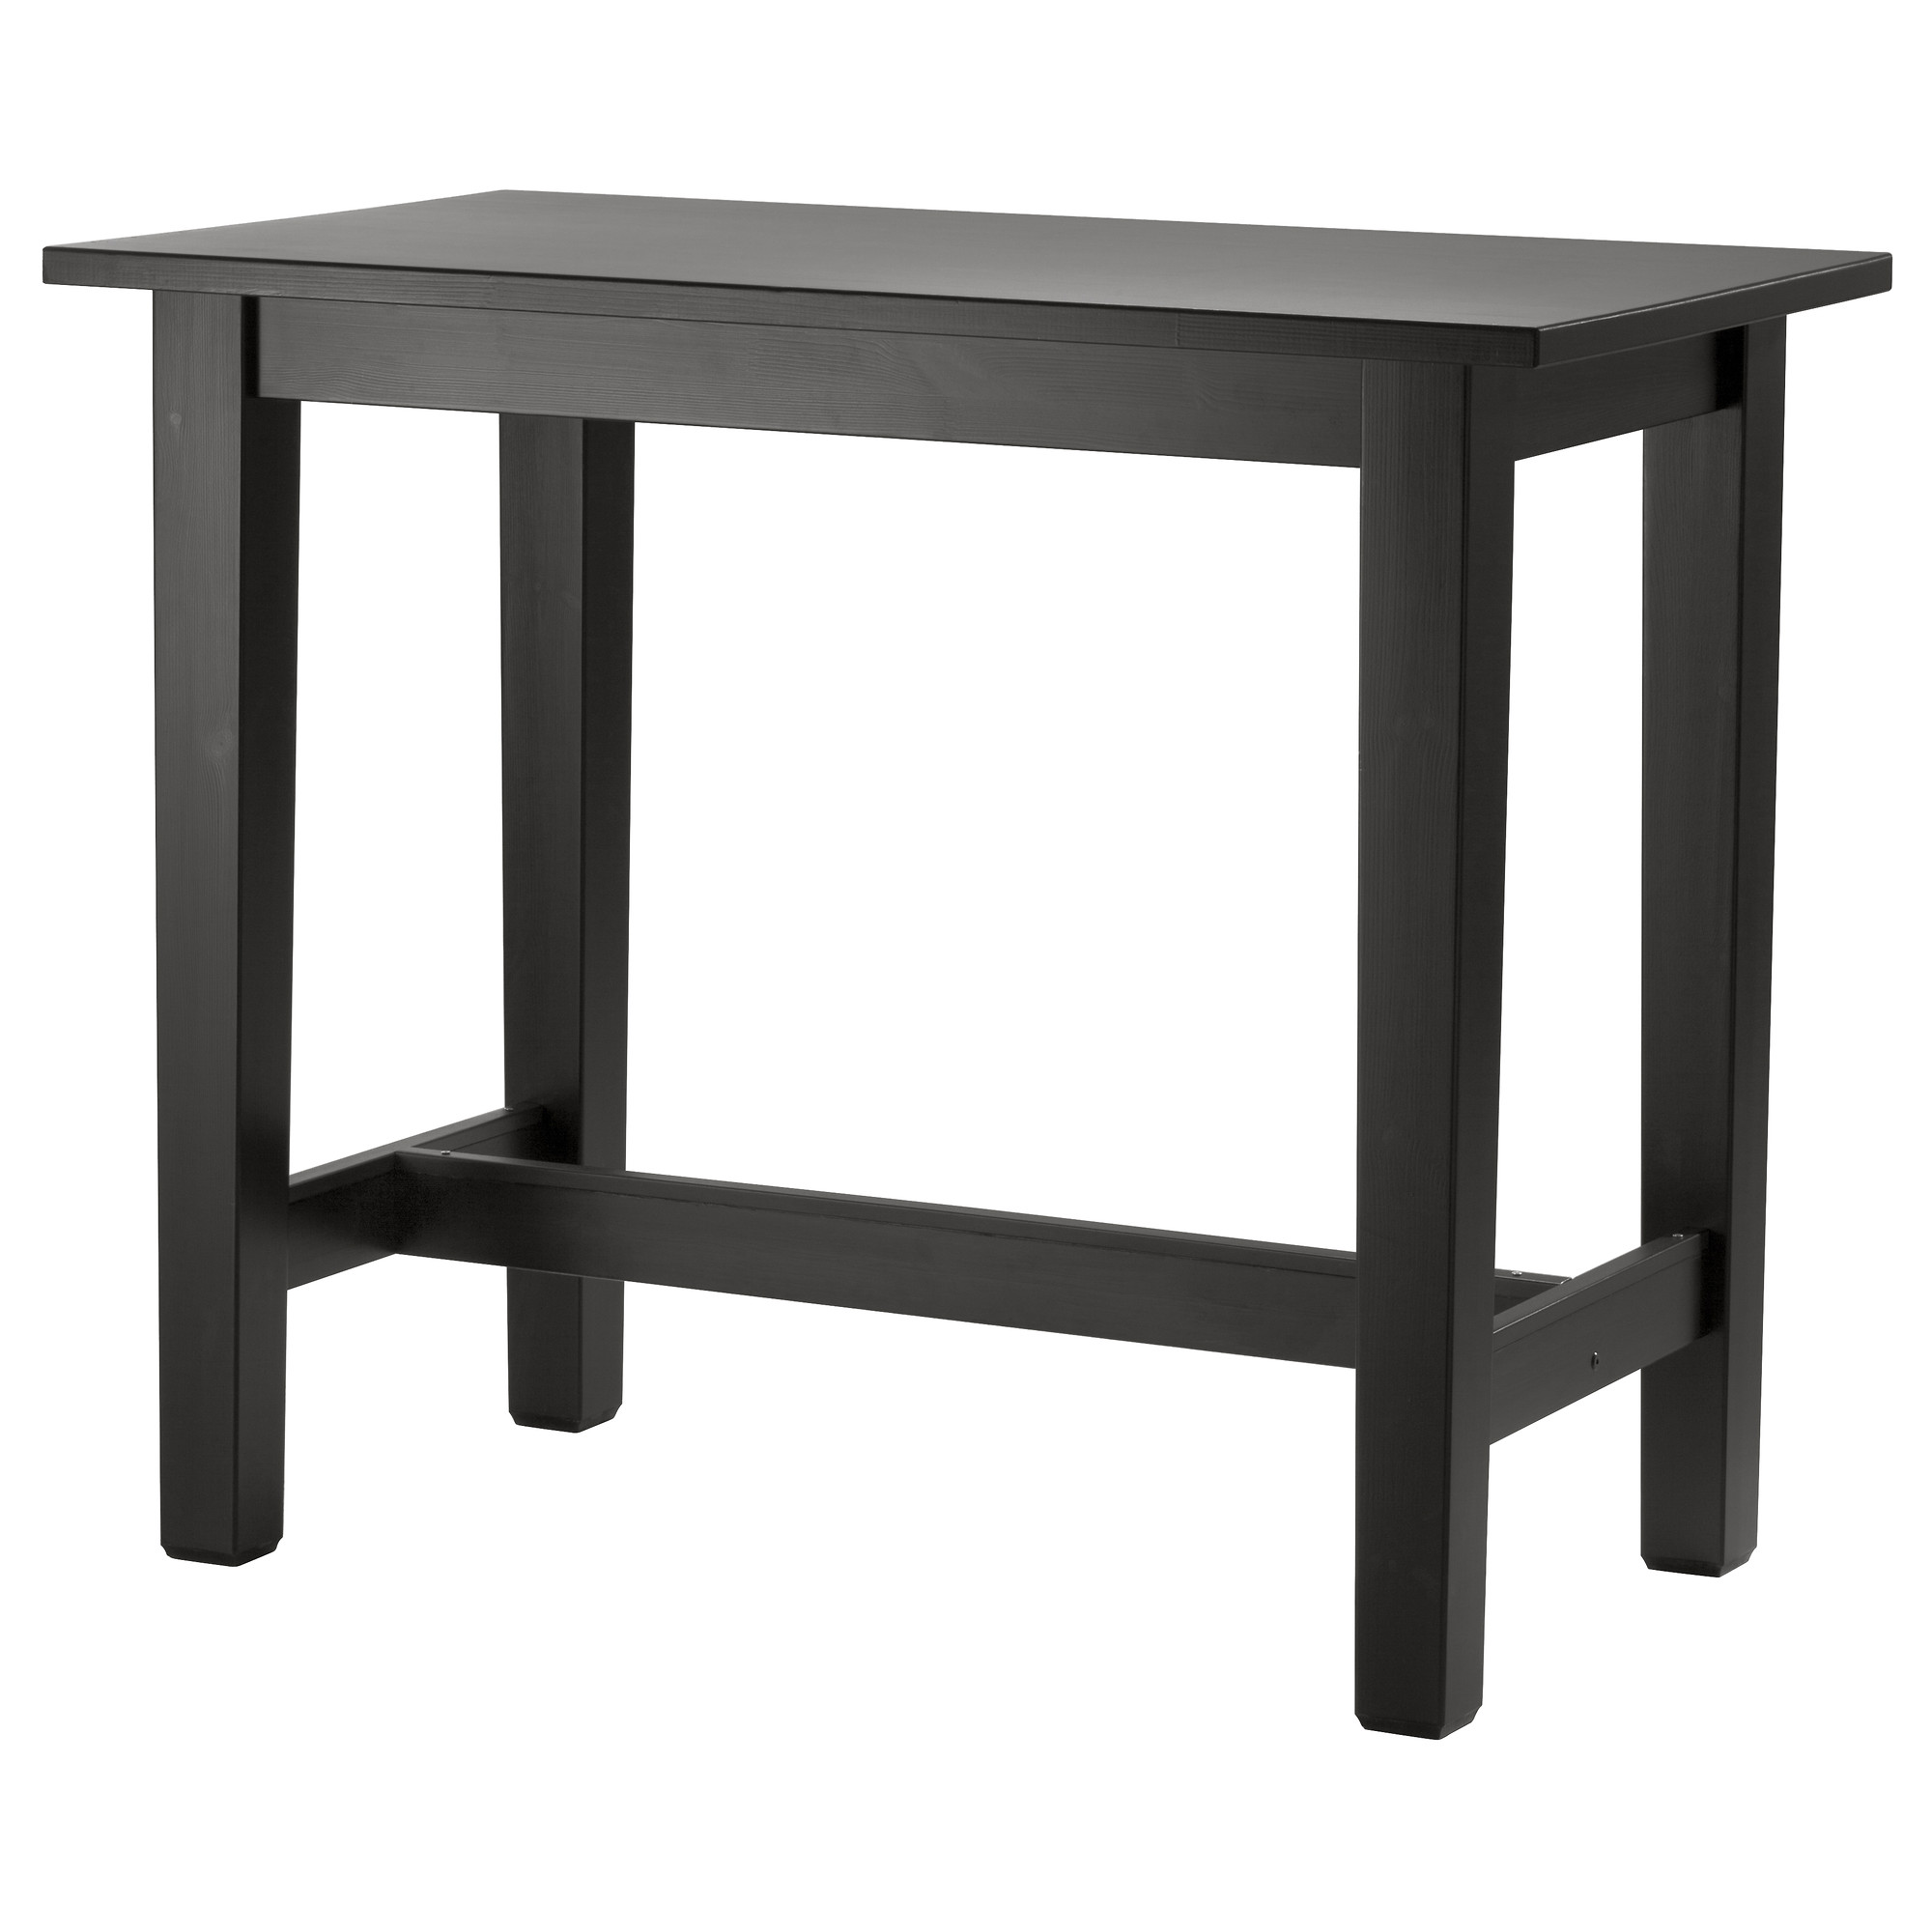 Genial Cool Black Wooden High Top Tables Ikea